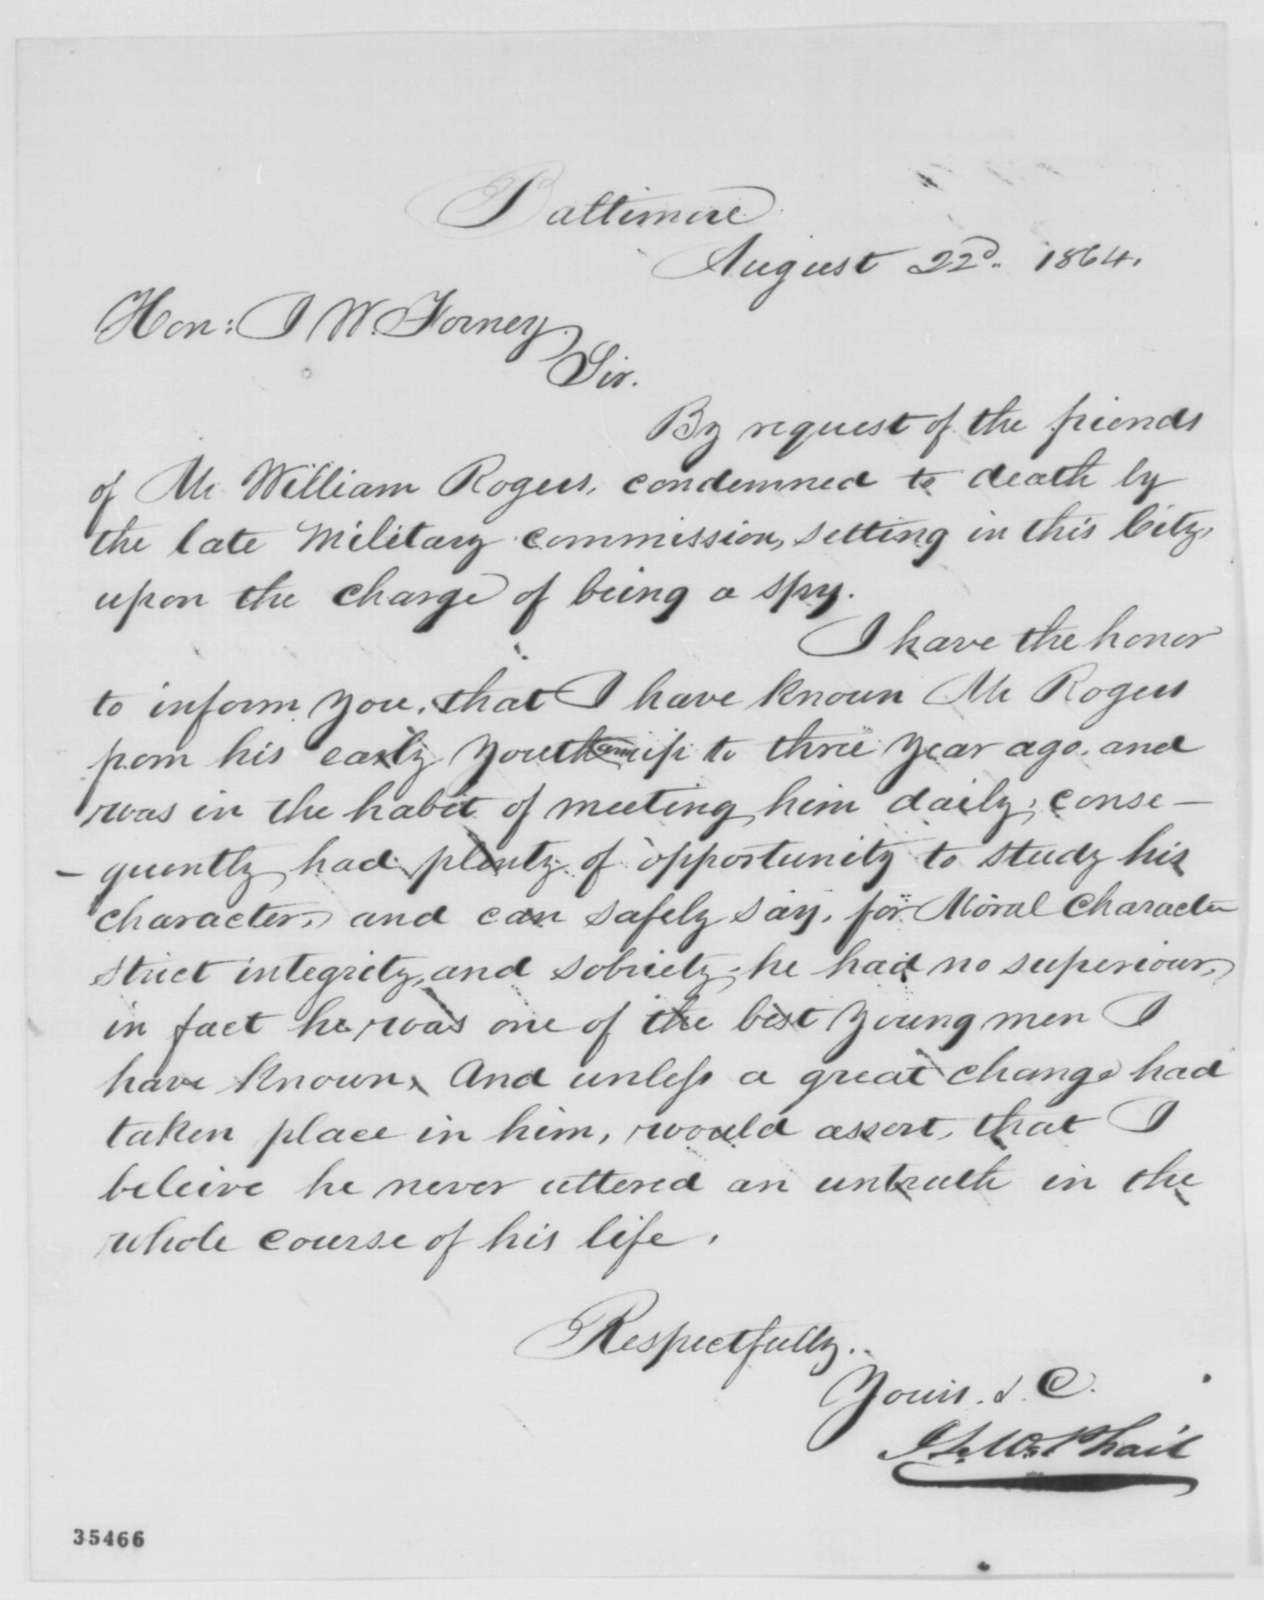 J. L. McPhail to John W. Forney, Monday, August 22, 1864  (Case of William Rogers)